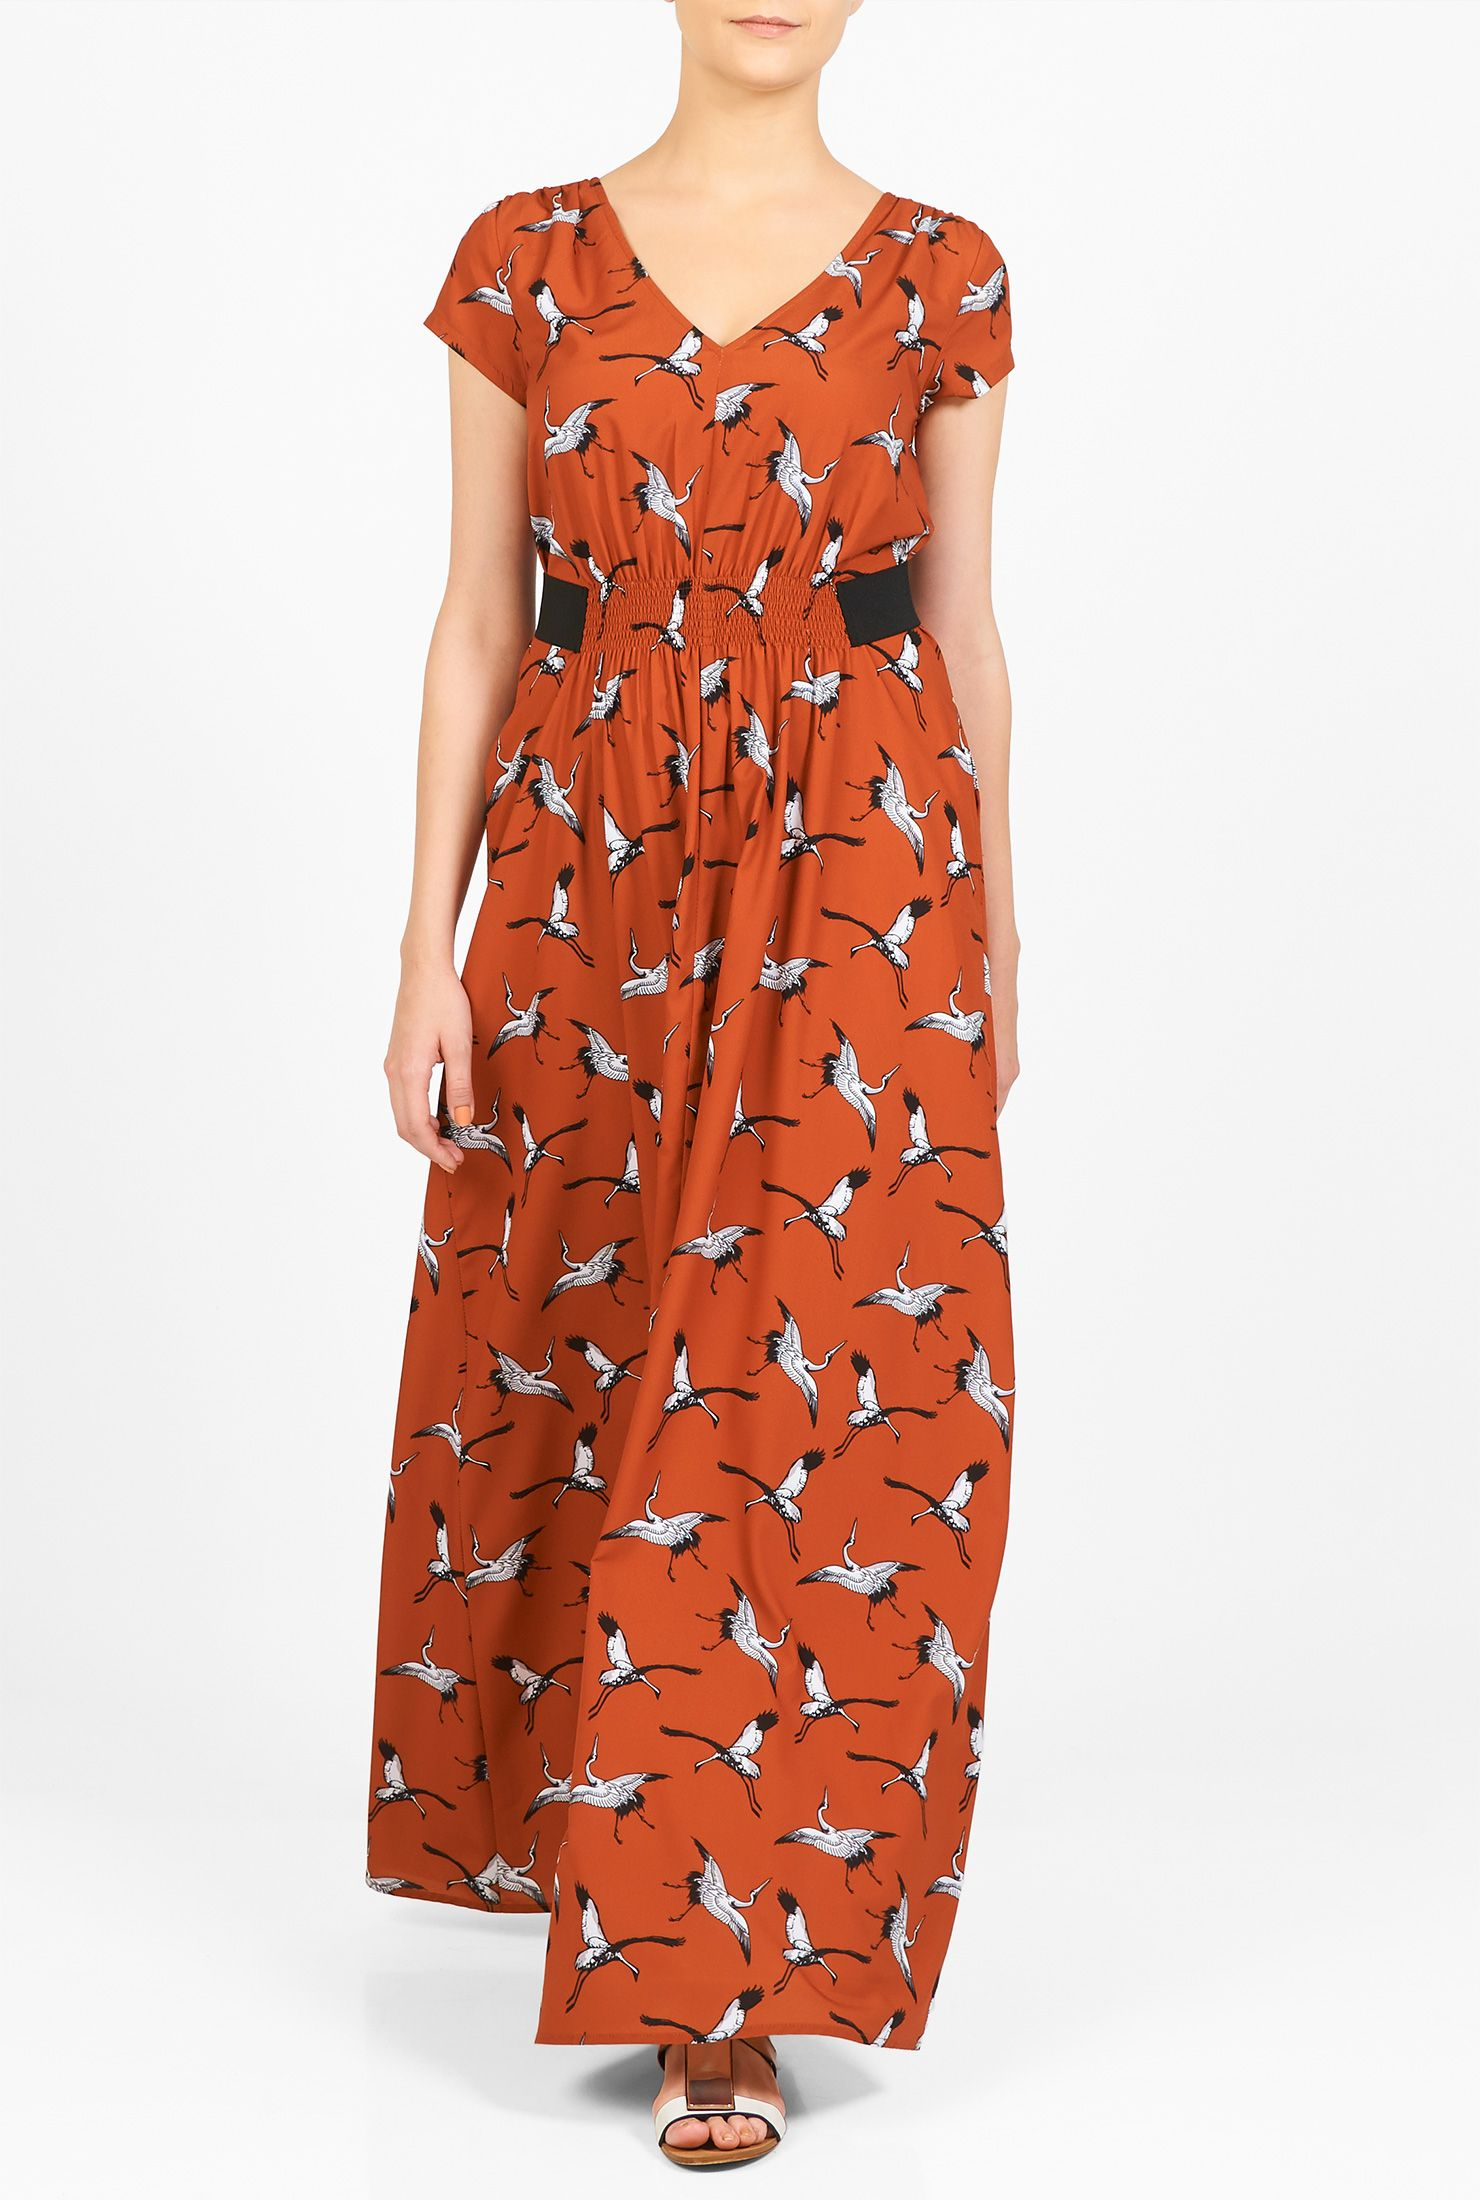 Our bird print crepe maxi dress is designed for casual wear but